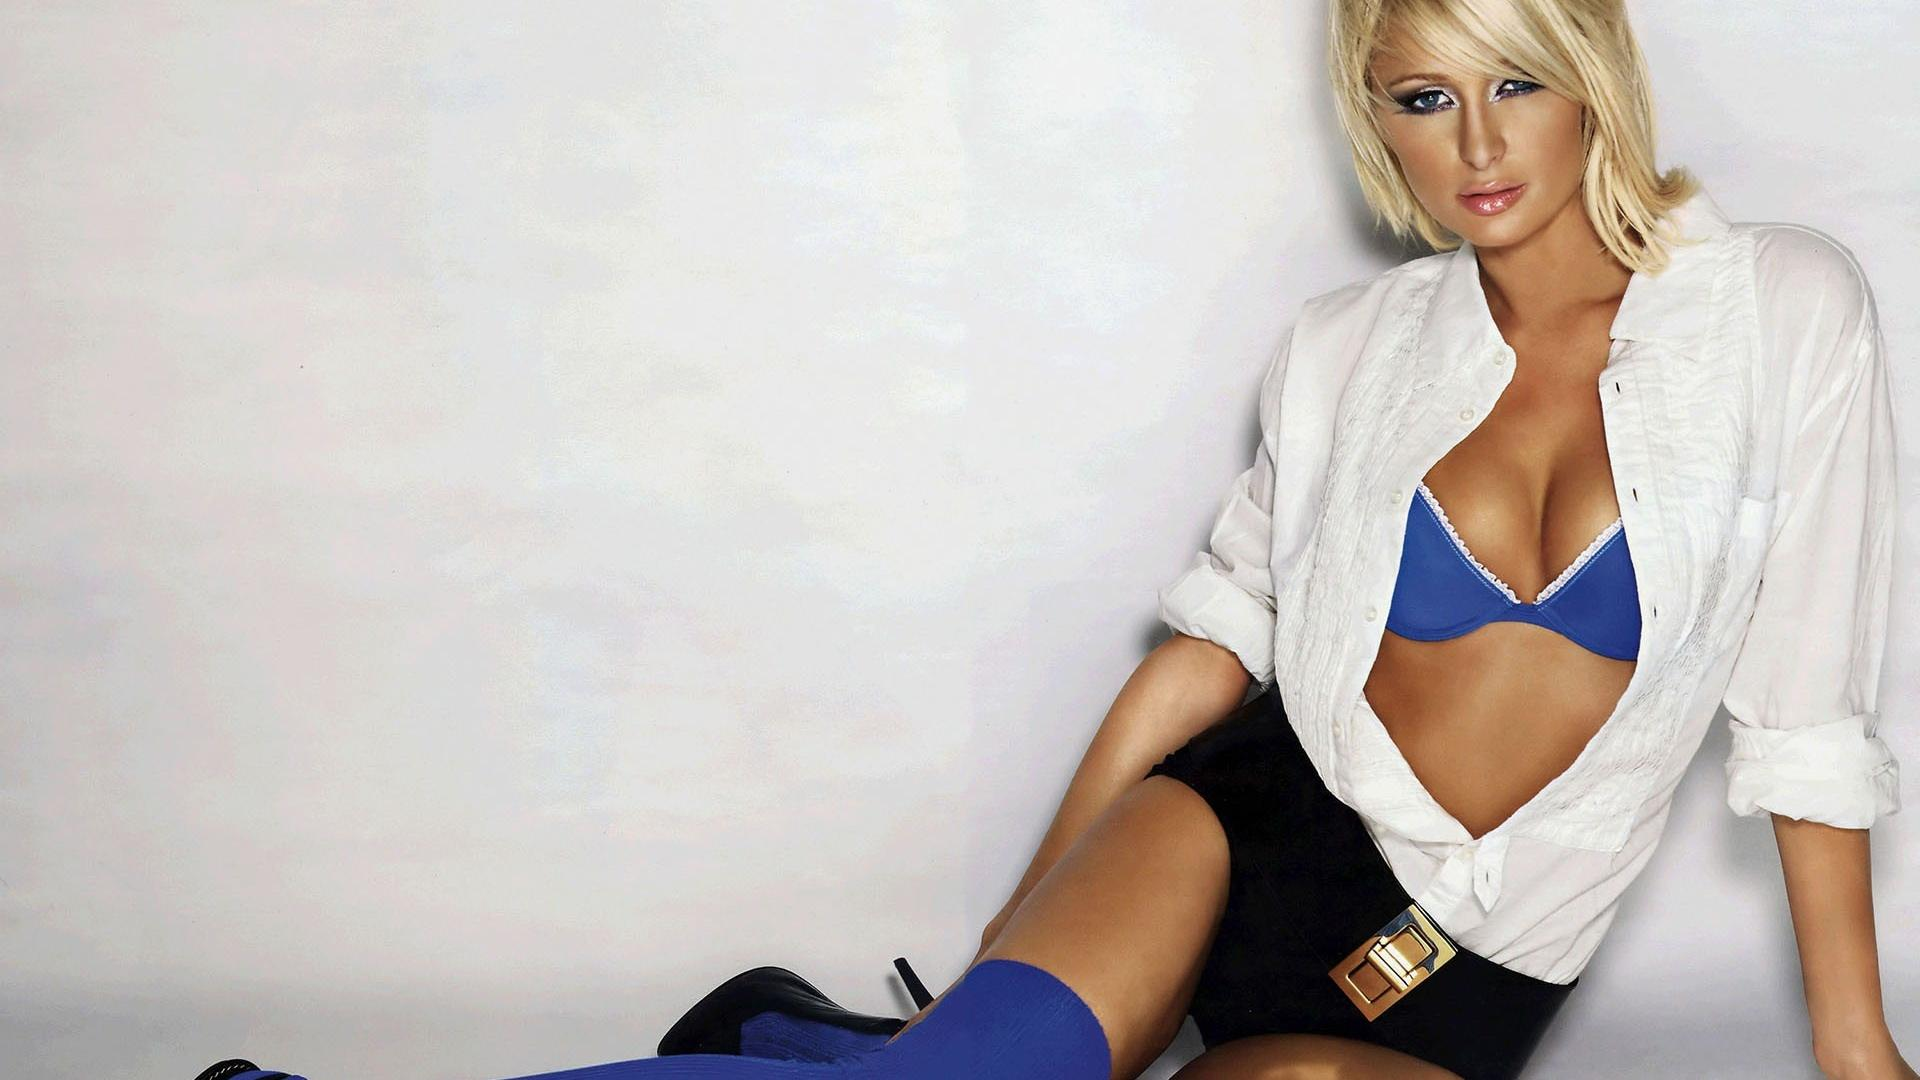 Paris Hilton hottest images photo pics